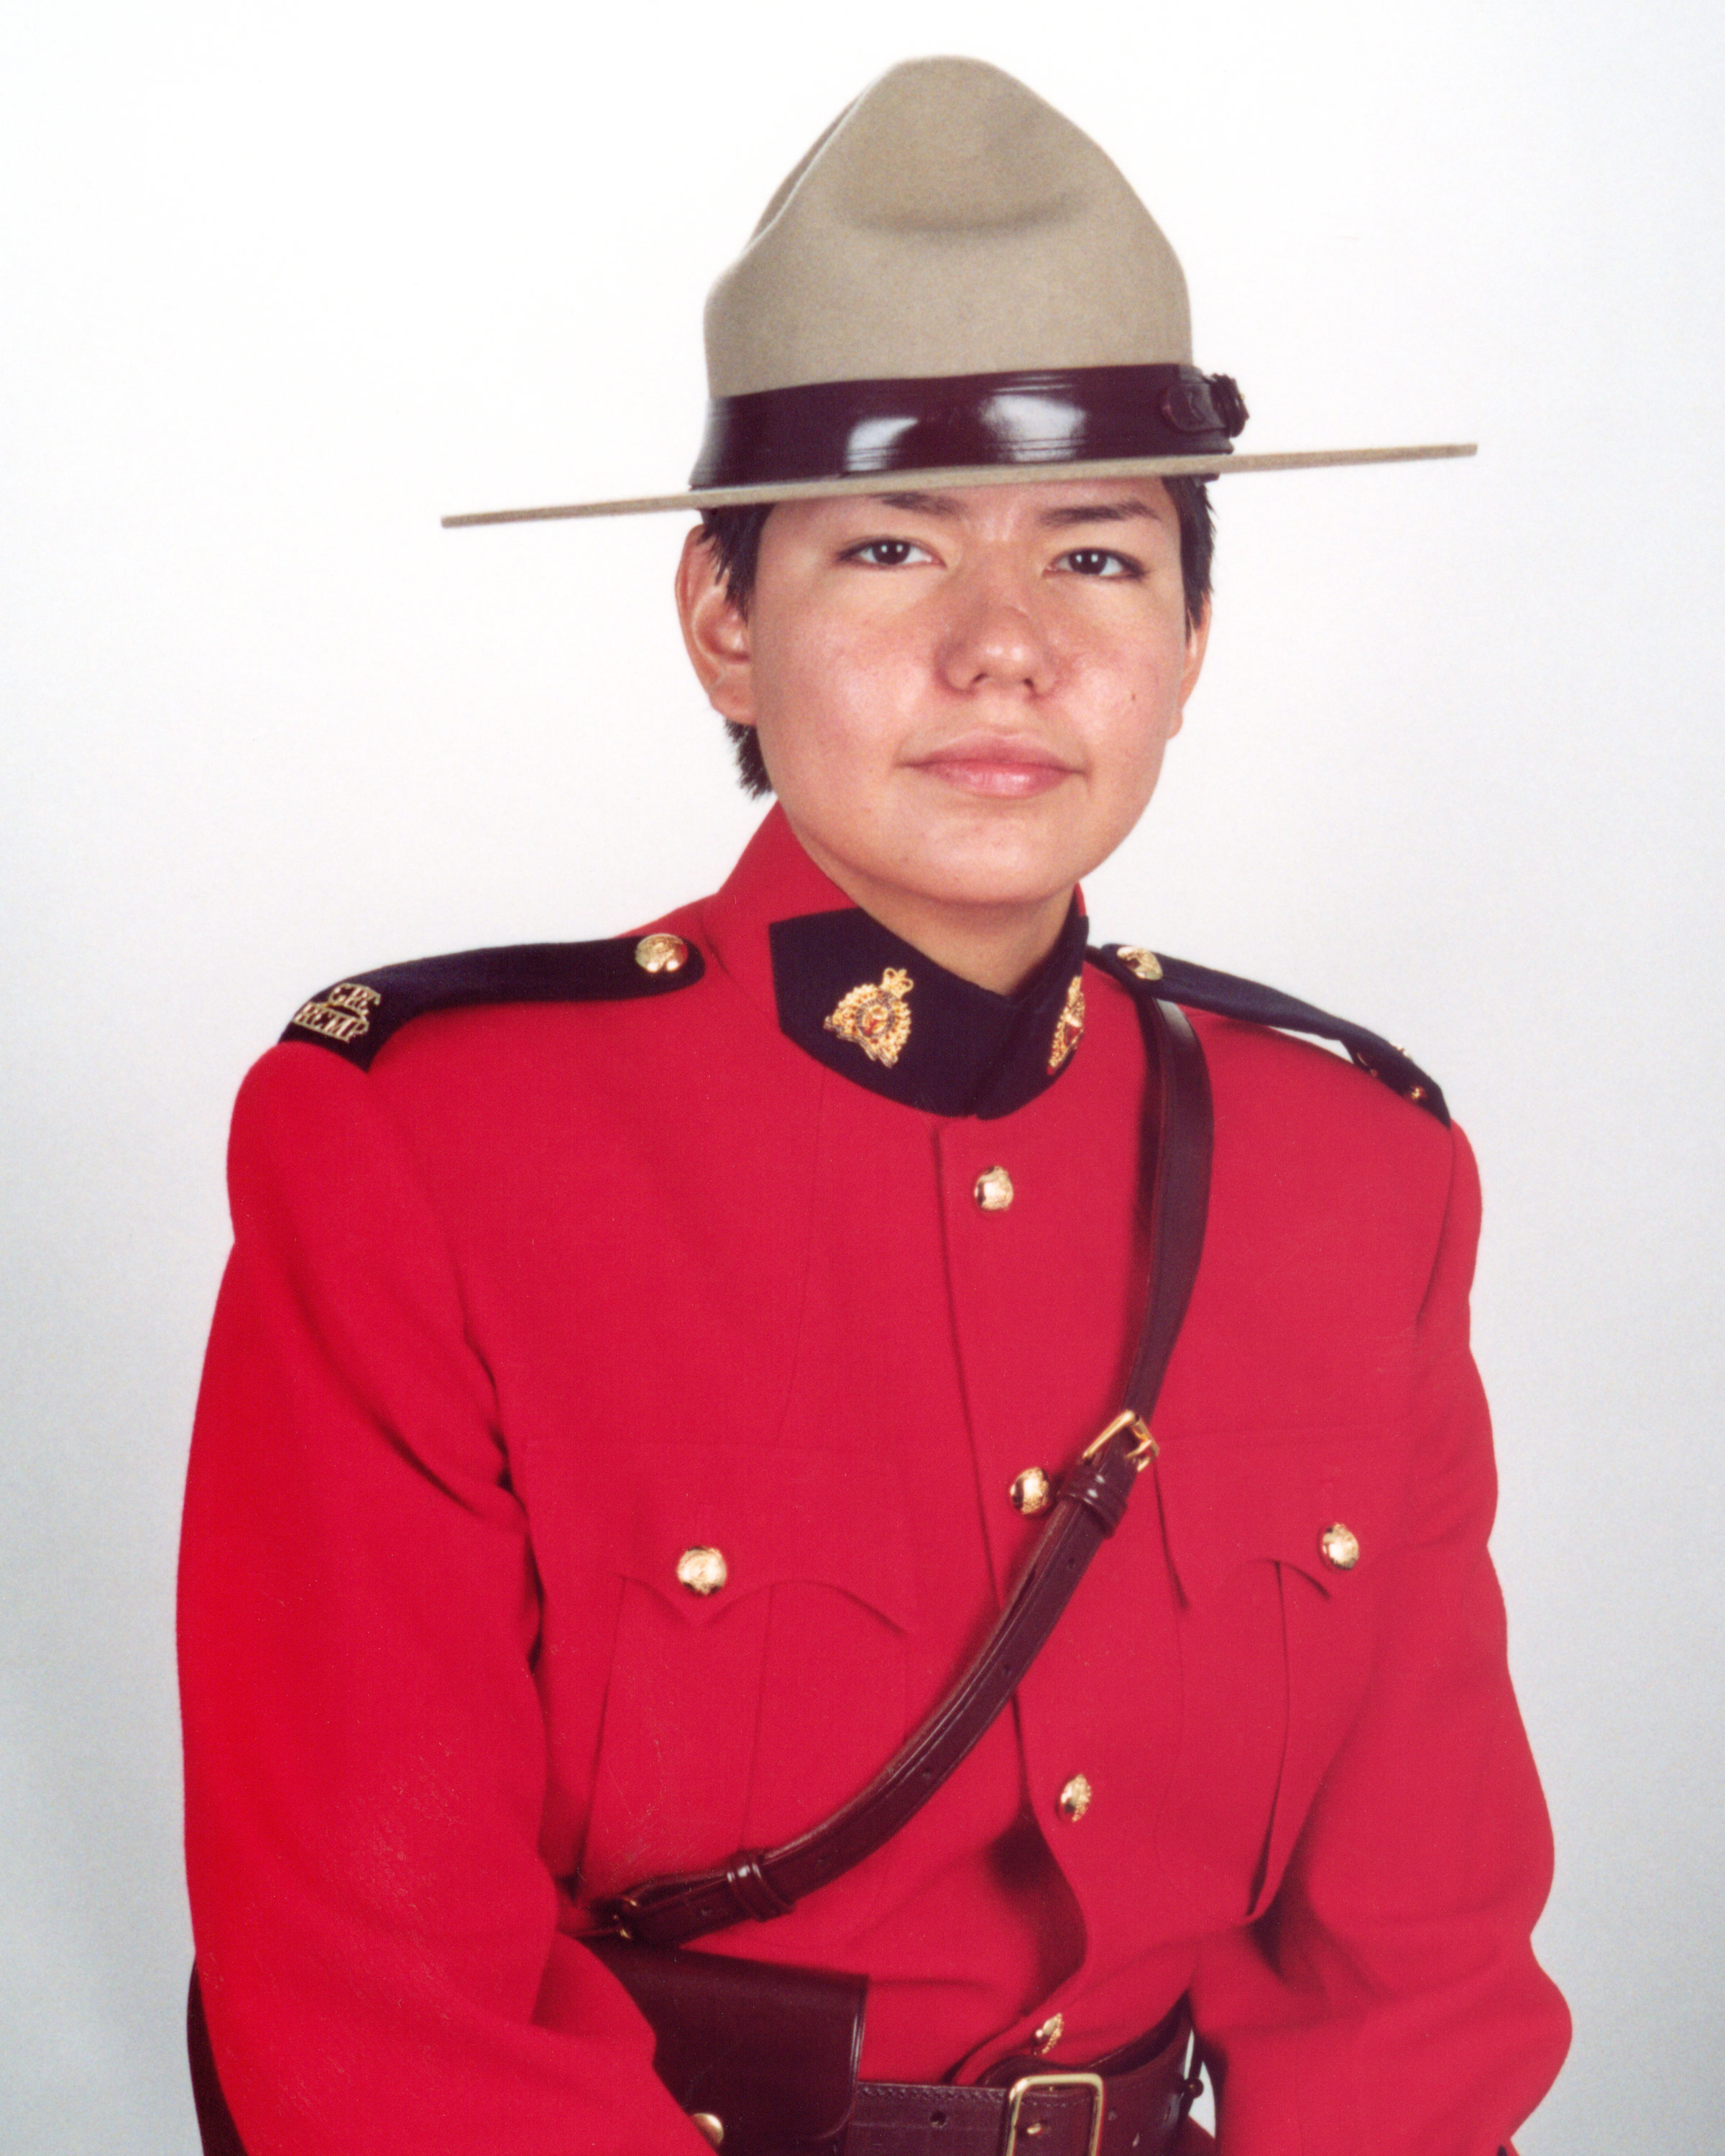 Constable Robin Lynelle Cameron– © Her Majesty the Queen in Right of Canada as represented by the Royal Canadian Mounted Police